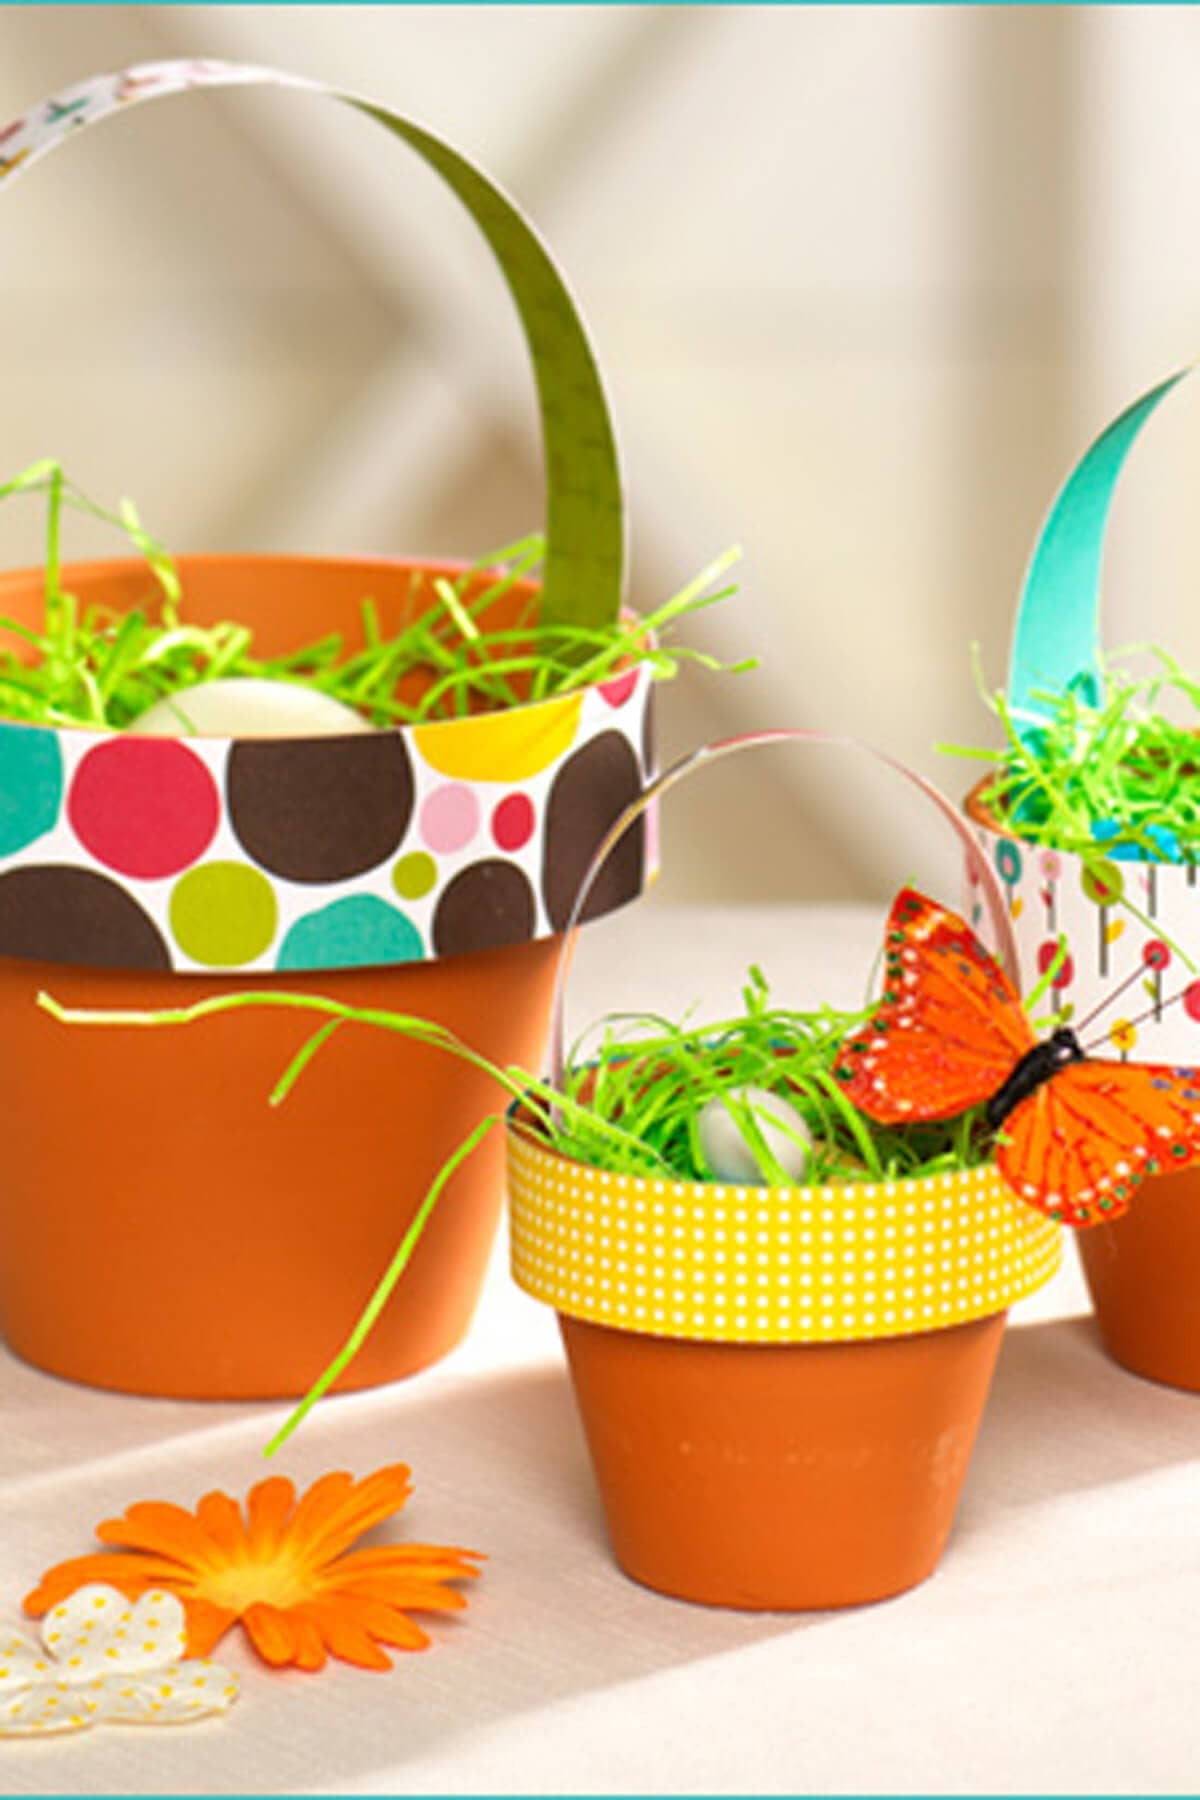 DIY Easter Basket Idea with Terra Cotta